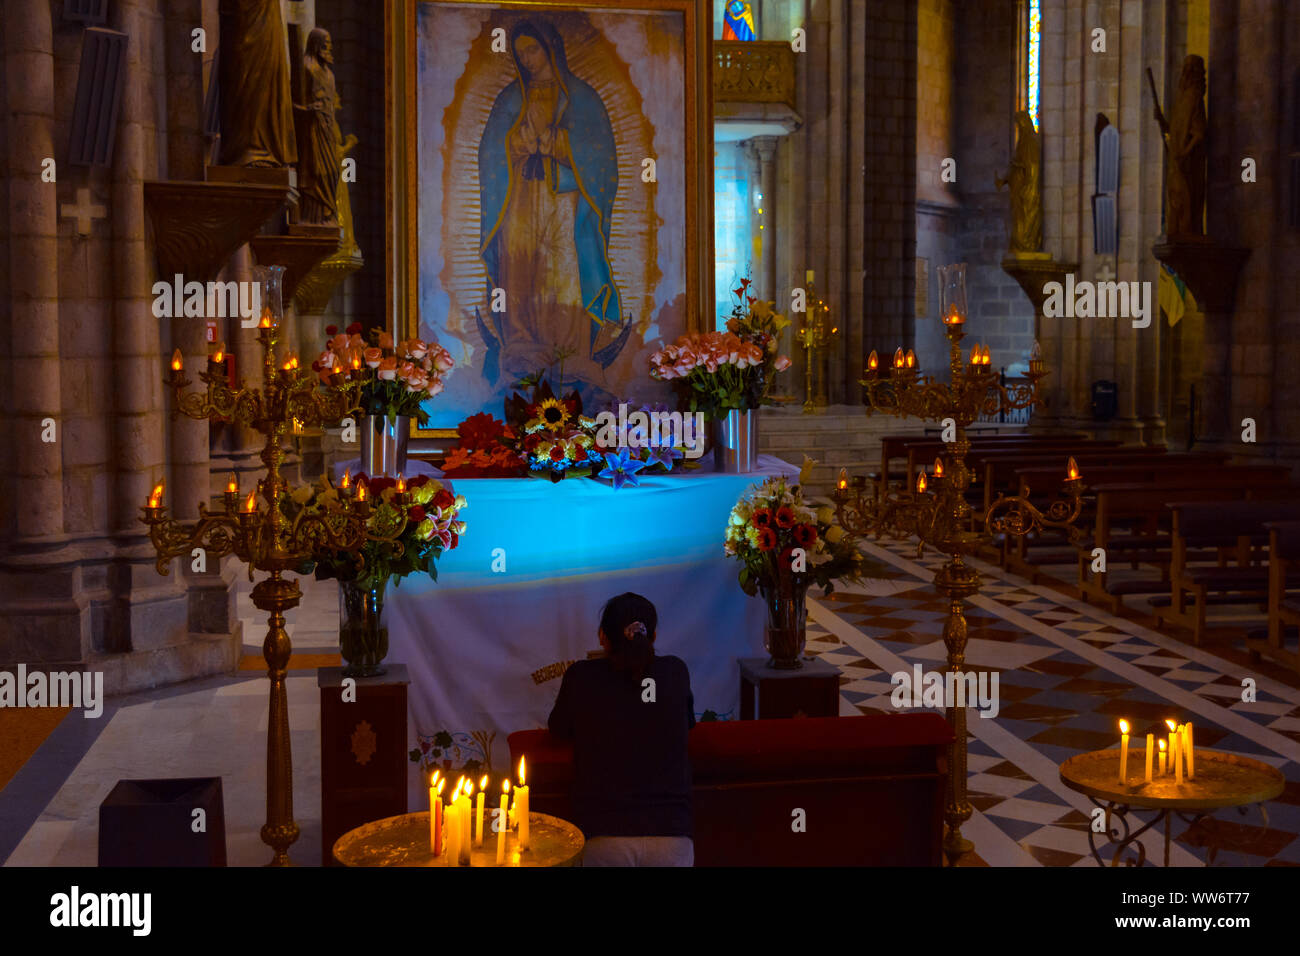 Quito, Pichincha, Ecuador. December 05 2017: Woman Praying in the Basilica of the National Vote. Due to its size and style, it is considered the large Stock Photo